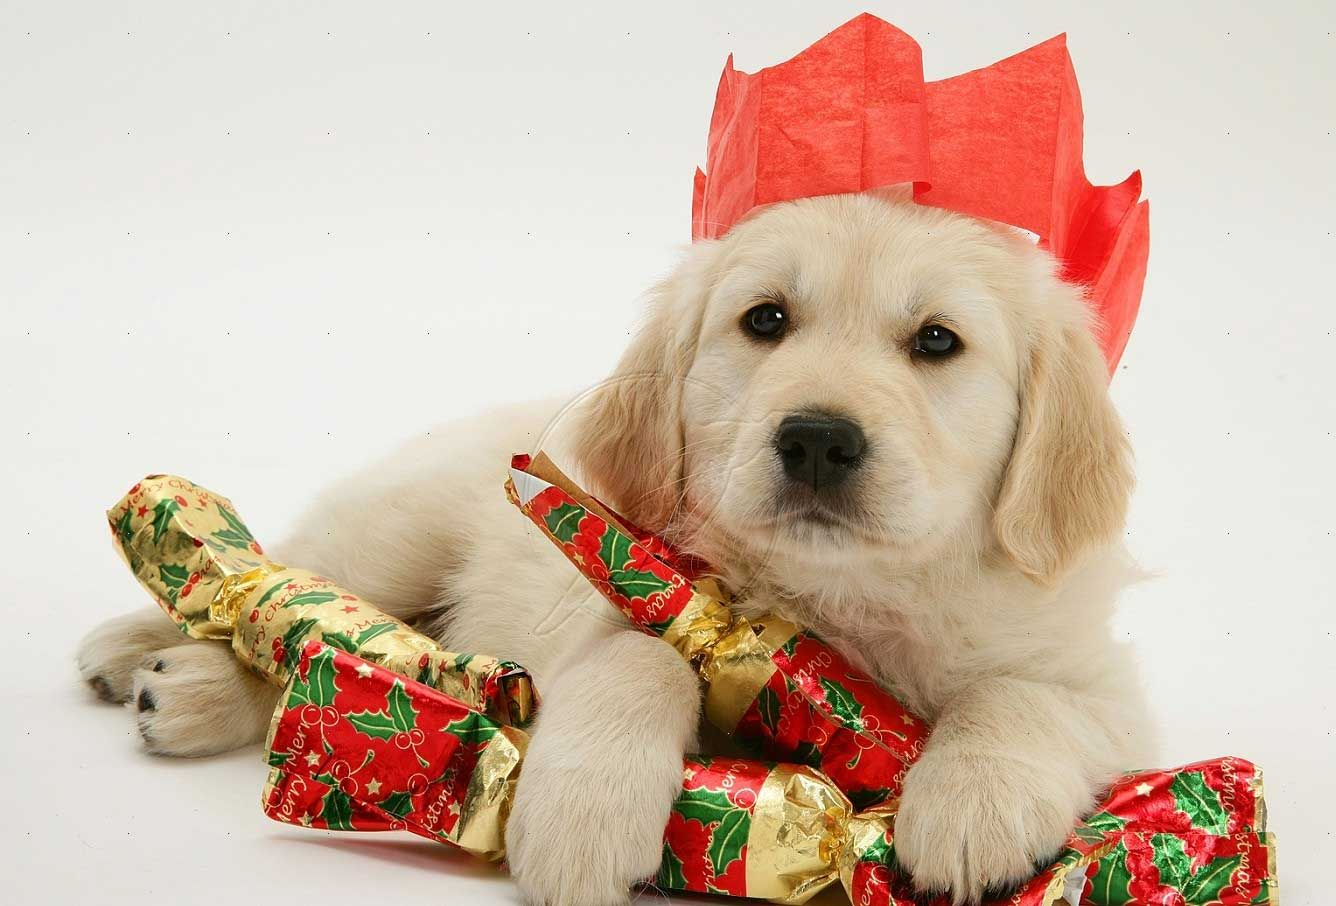 I 've Got Three Christmas Gift More photos of cute and funny puppies, visit http://pewpaw.com/i-ve-got-three-christmas-gift/